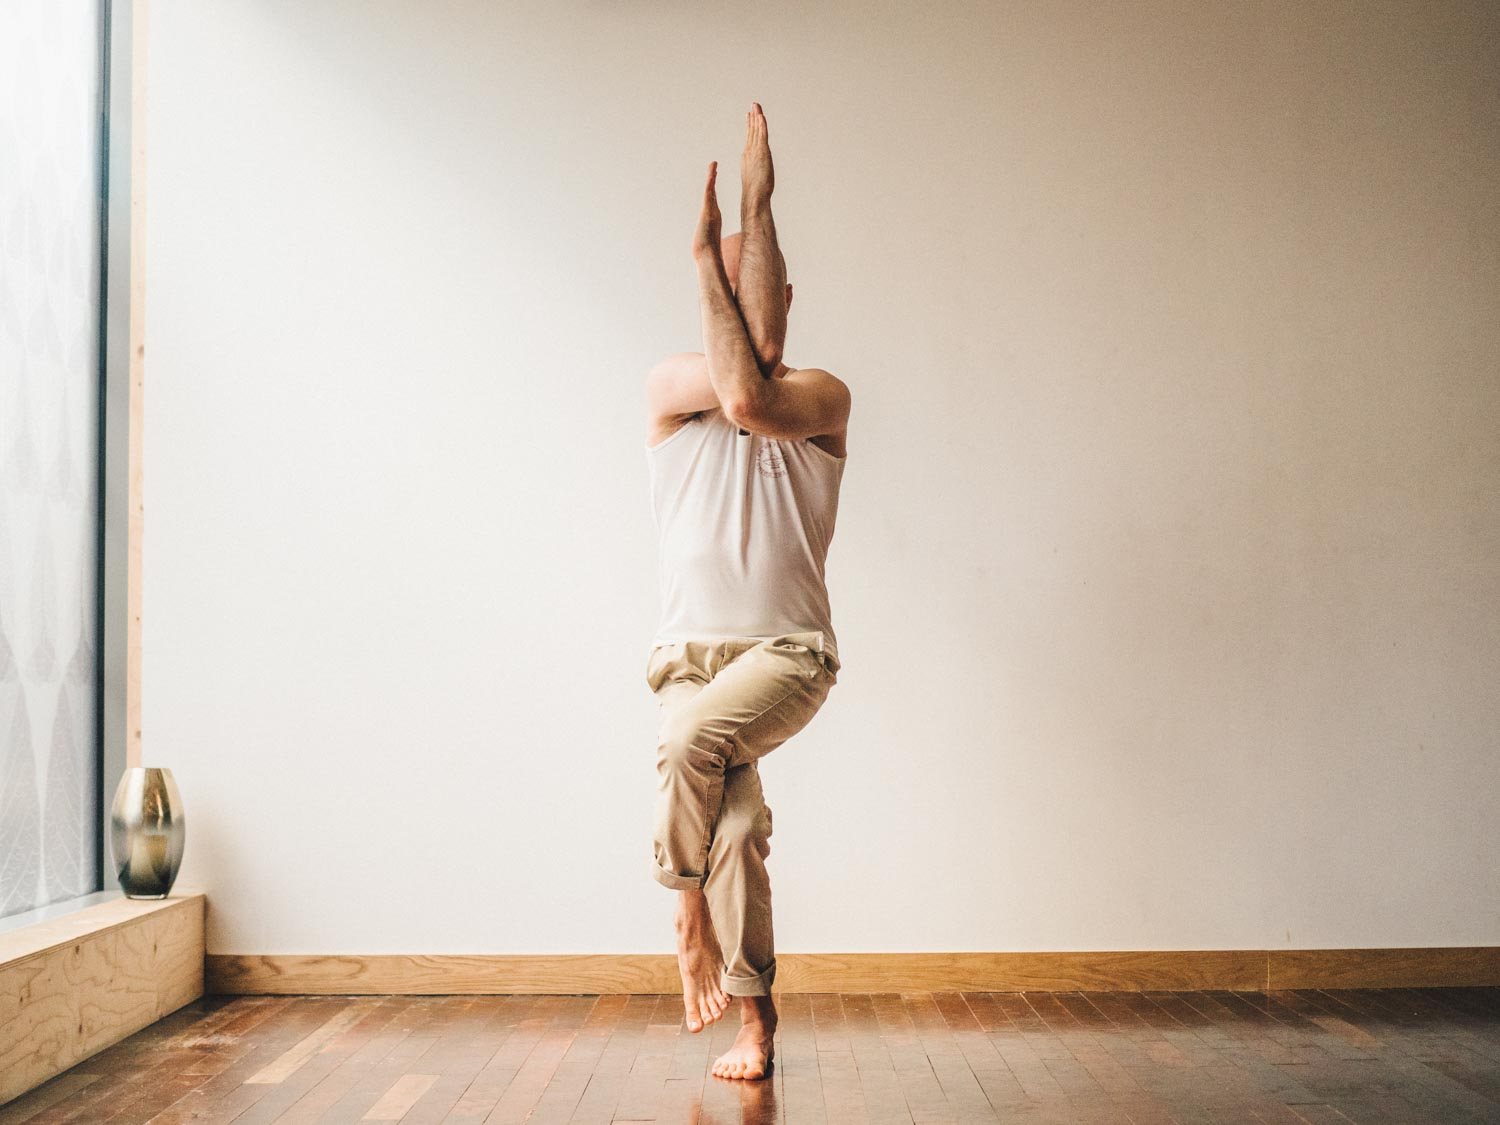 Man doing eagle pose or Garudasana in yoga studio